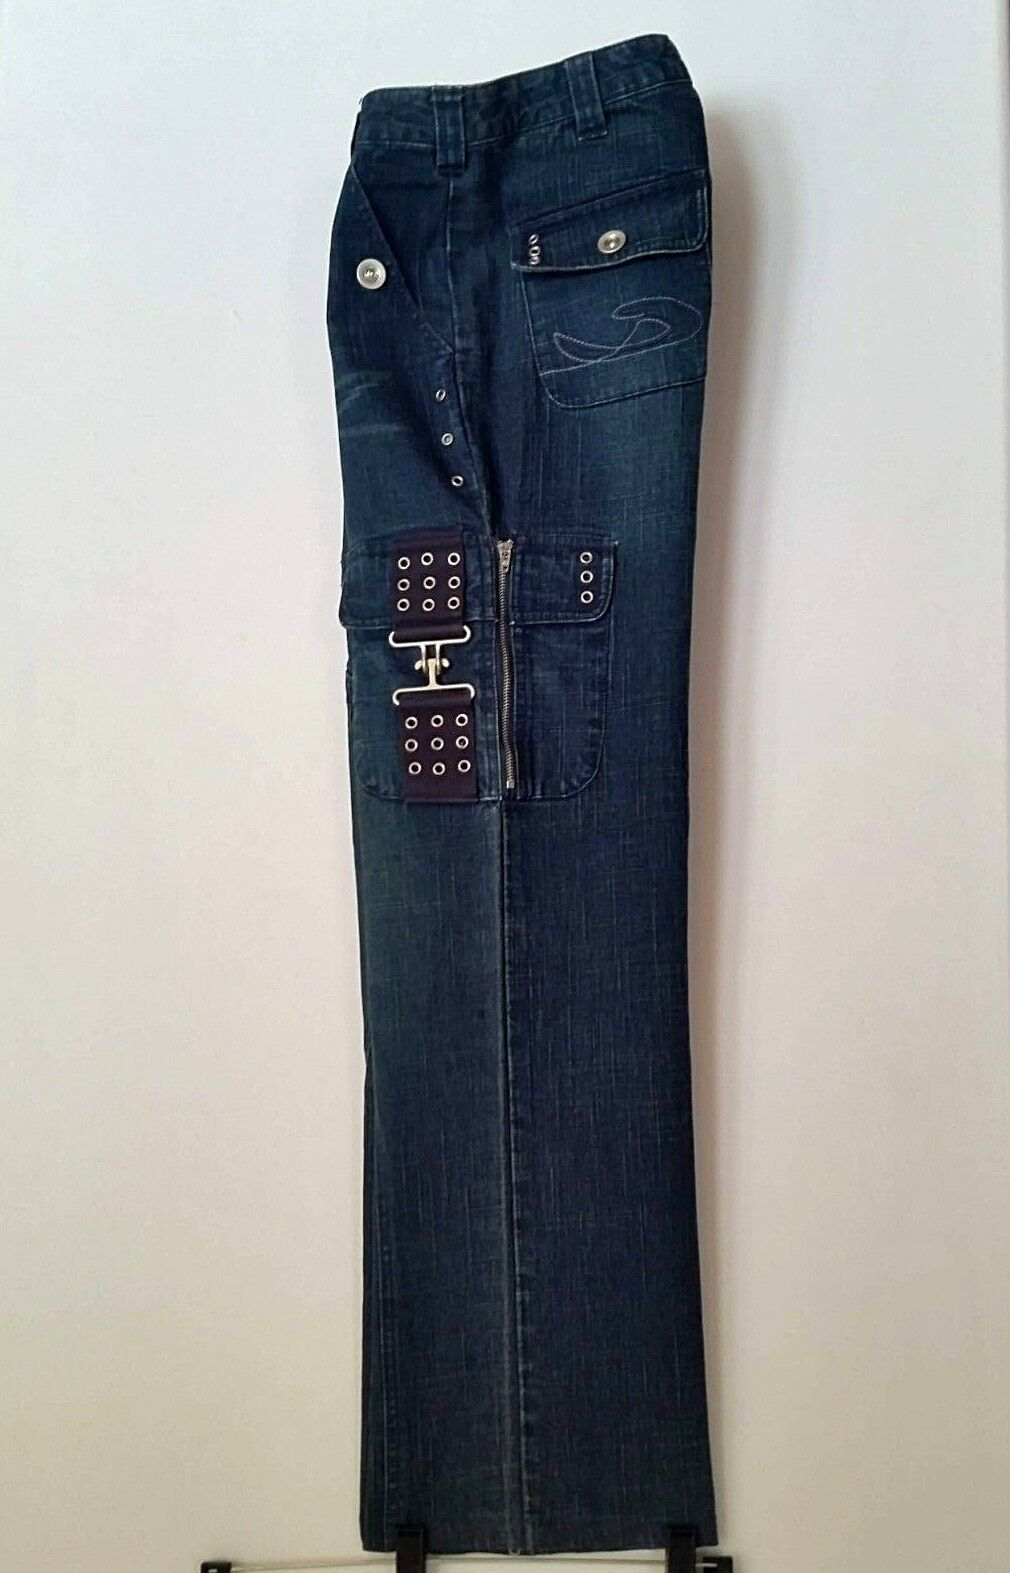 CHRISTIAN LACROIX Jeans Wide Leg Pant with HARDWARE Womens SZ 26 MED DARK WASH